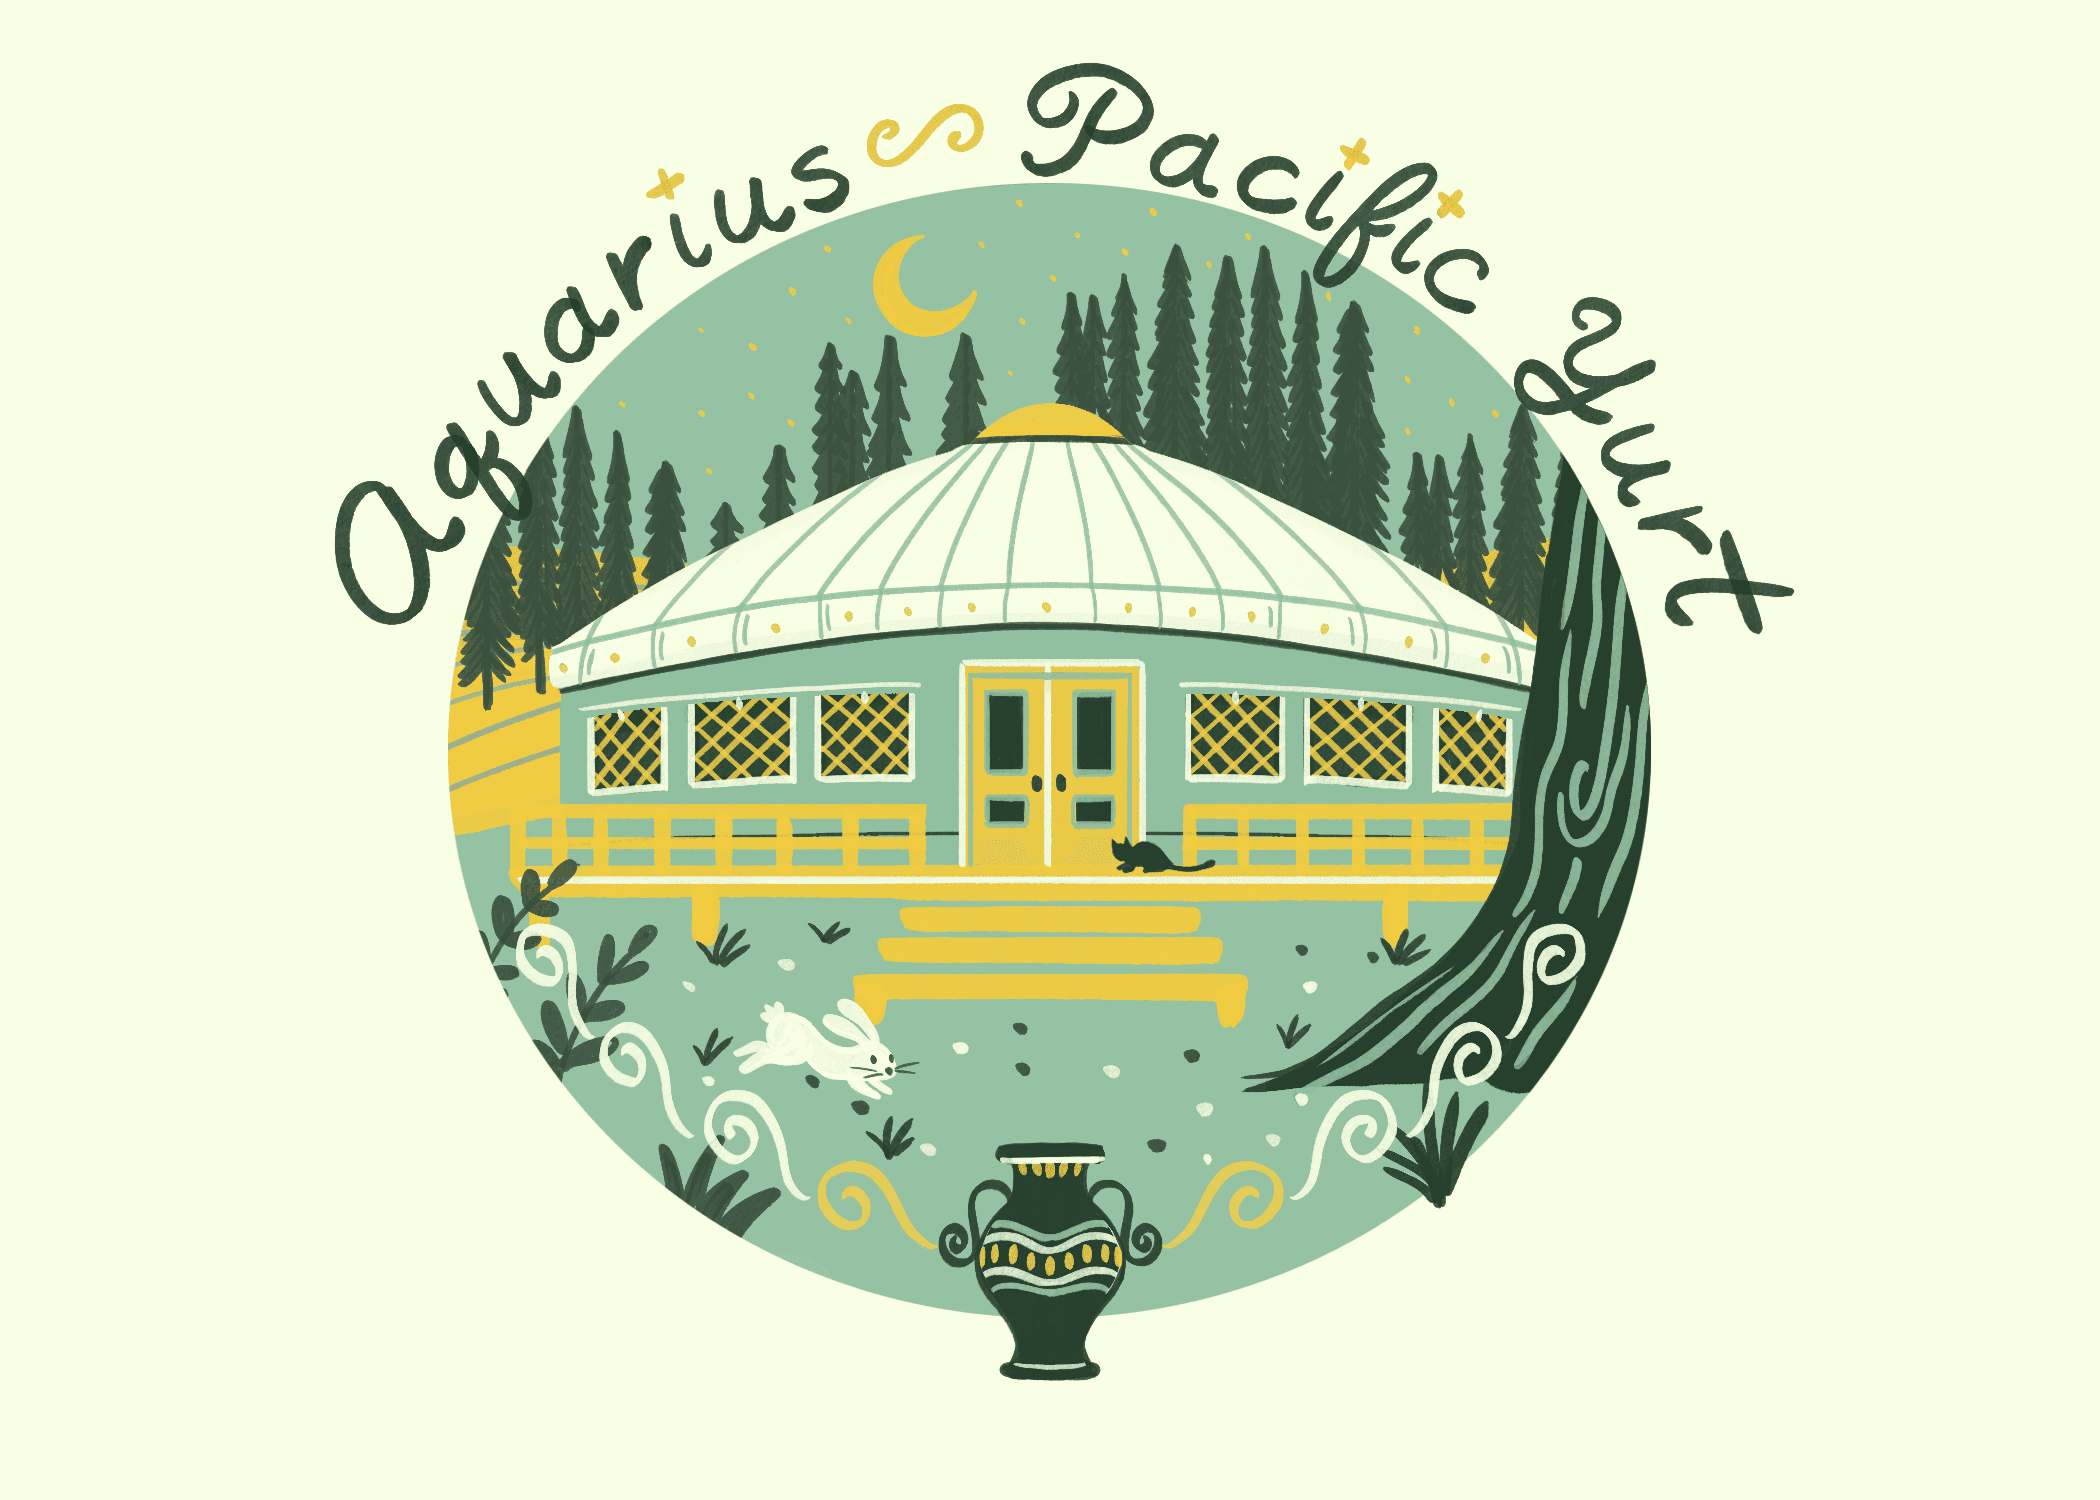 An illustration of a yurt for an aquarius